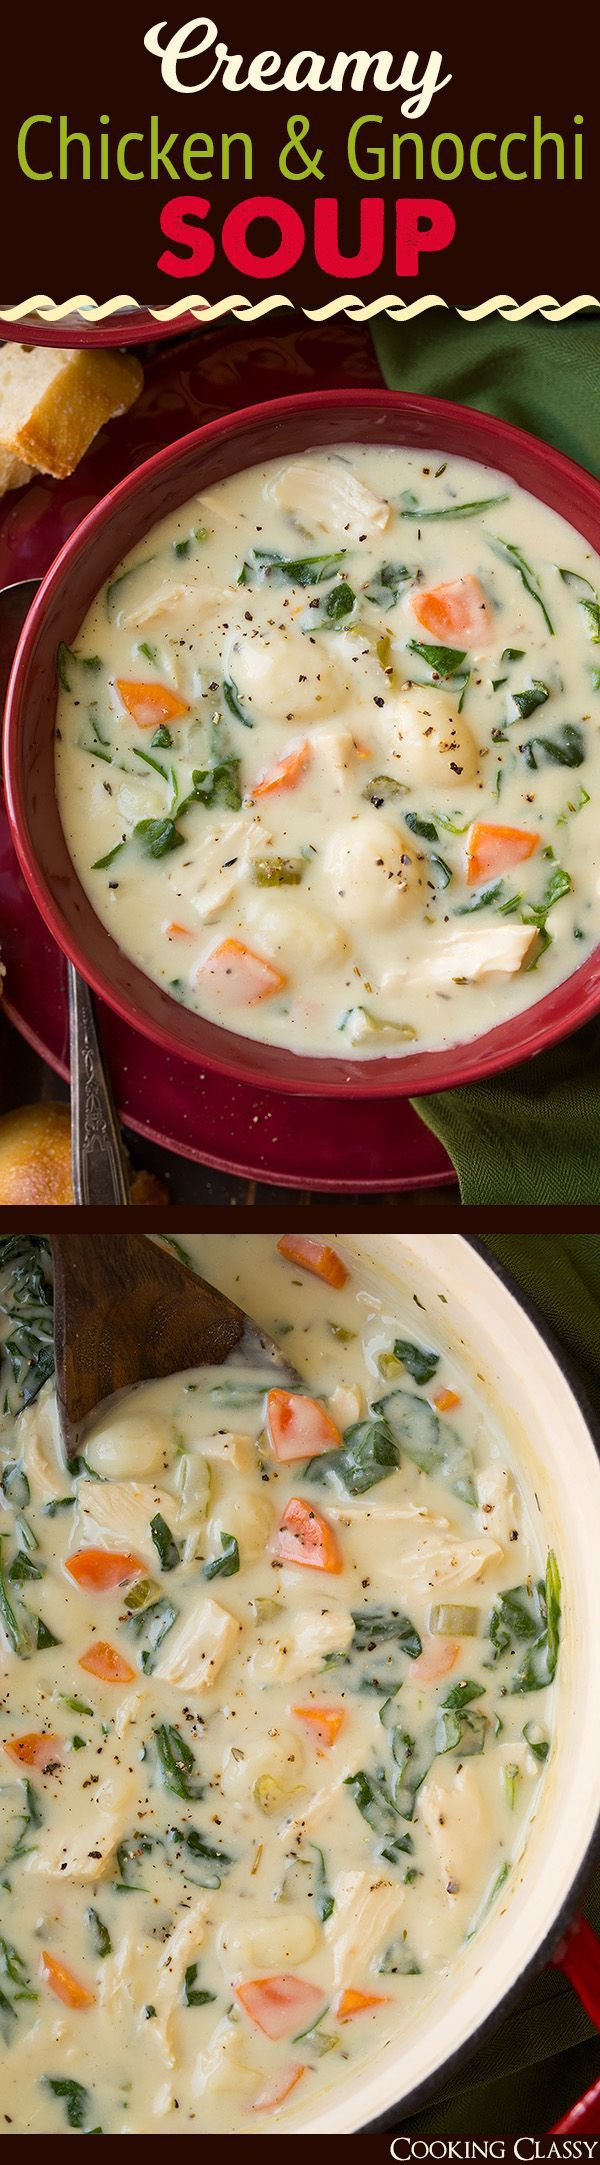 Creamy Chicken and Gnocchi Soup (Olive Garden Copycat)  Cooking Classy